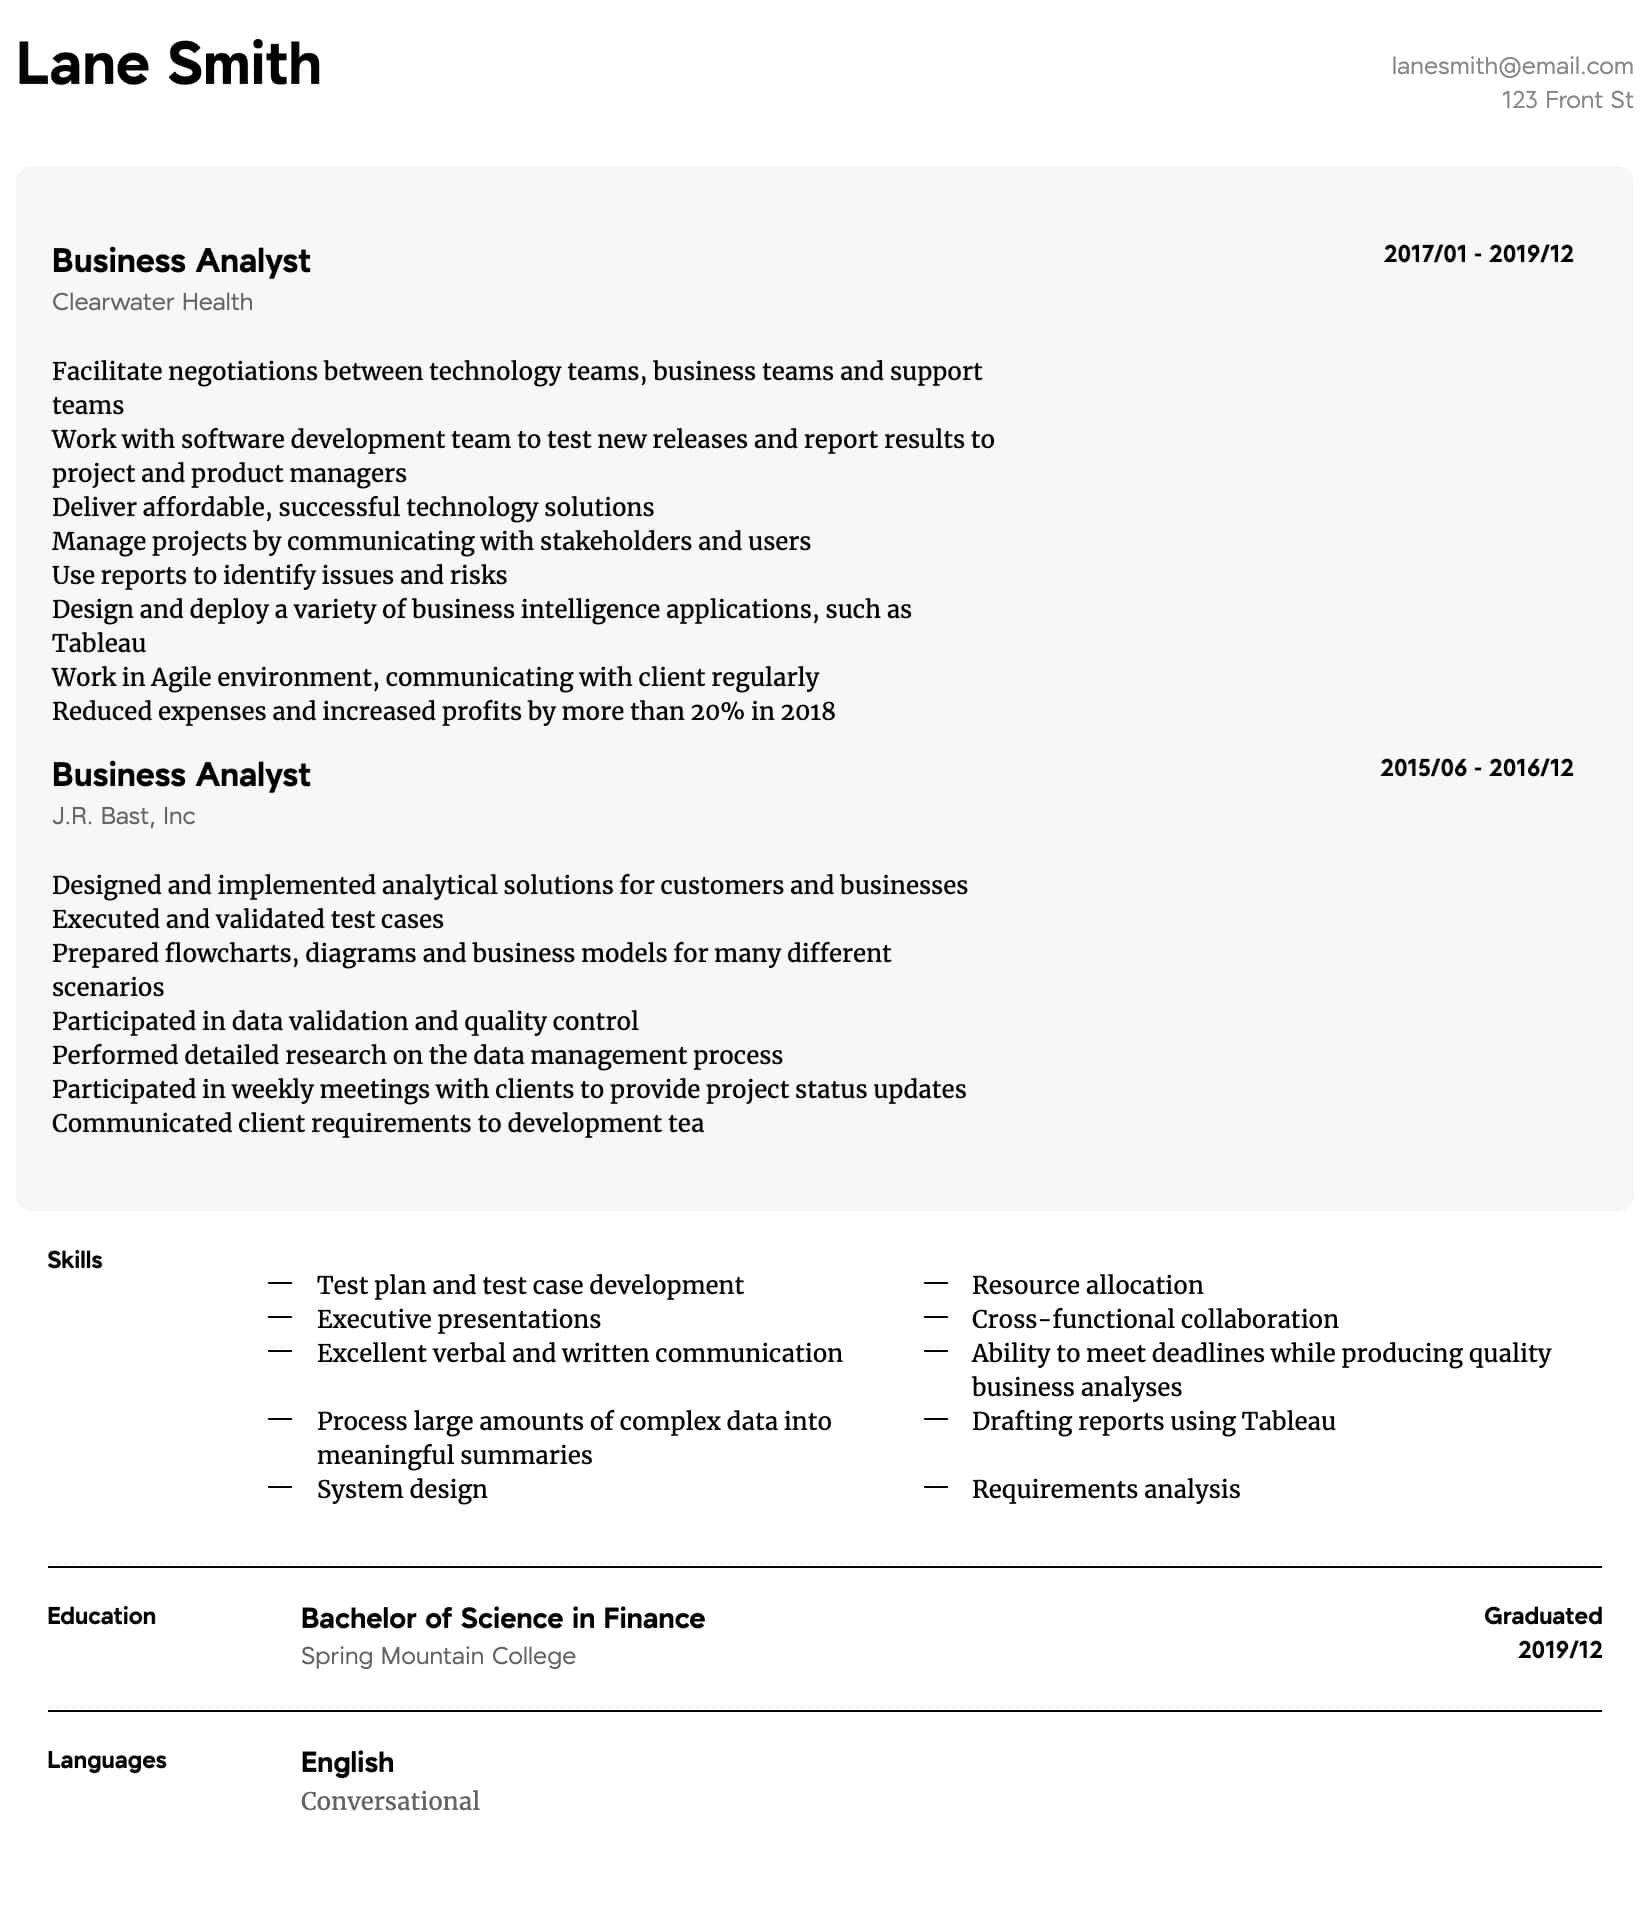 business analyst resume samples all experience levels indeed intermediate teradata Resume Business Analyst Resume Indeed